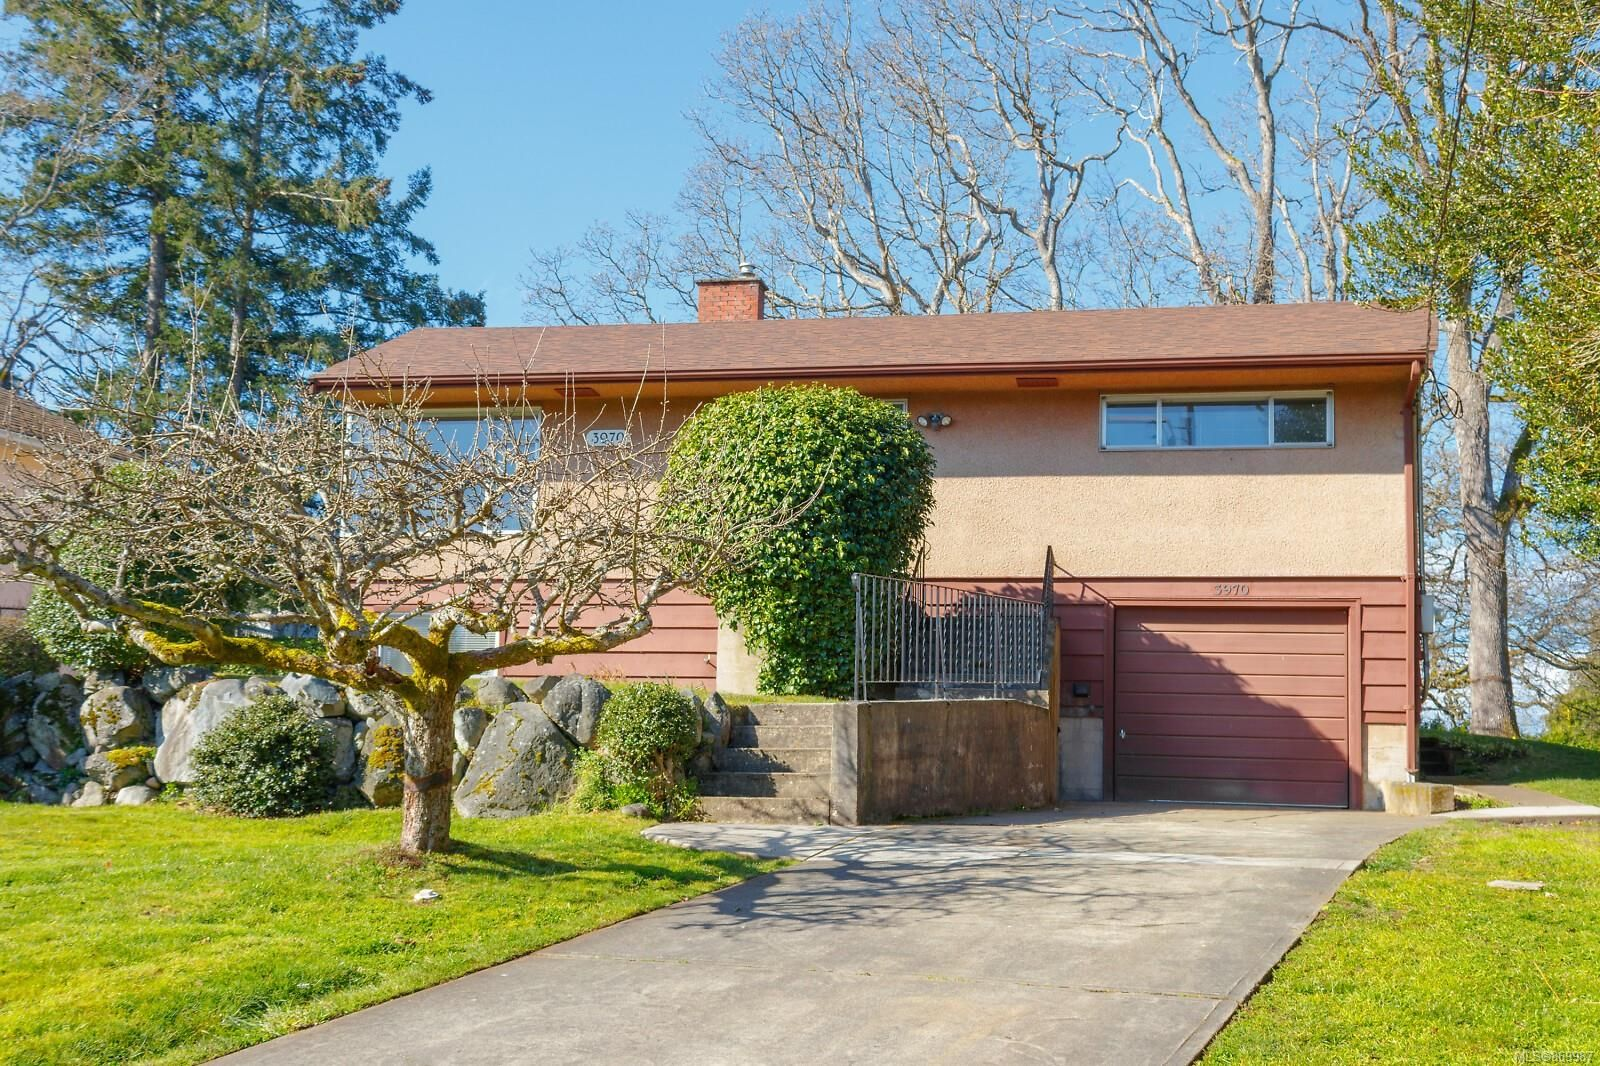 Main Photo: 3970 Bow Rd in : SE Mt Doug House for sale (Saanich East)  : MLS®# 869987